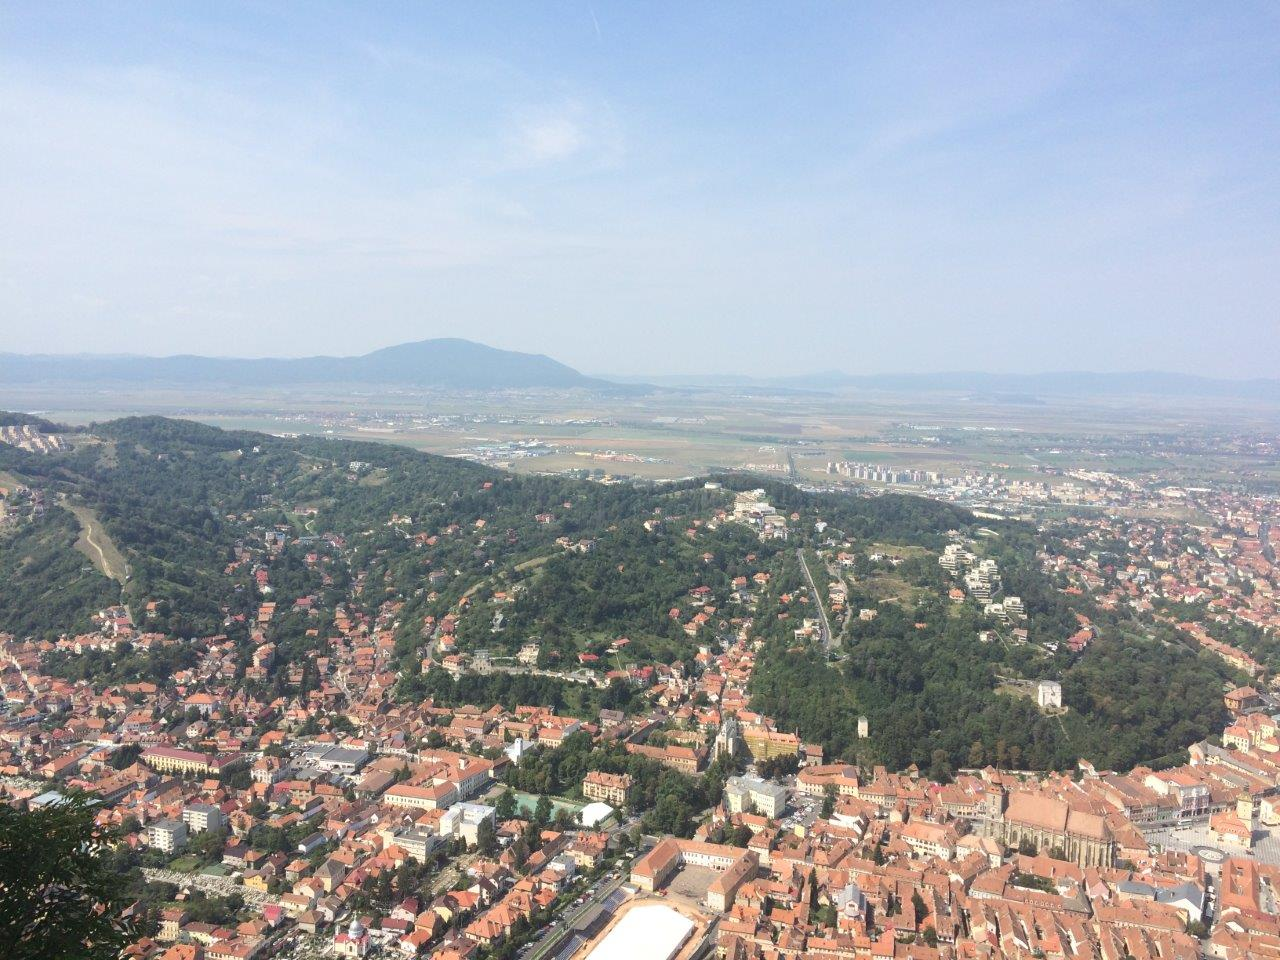 View over the city of Brasov Romania